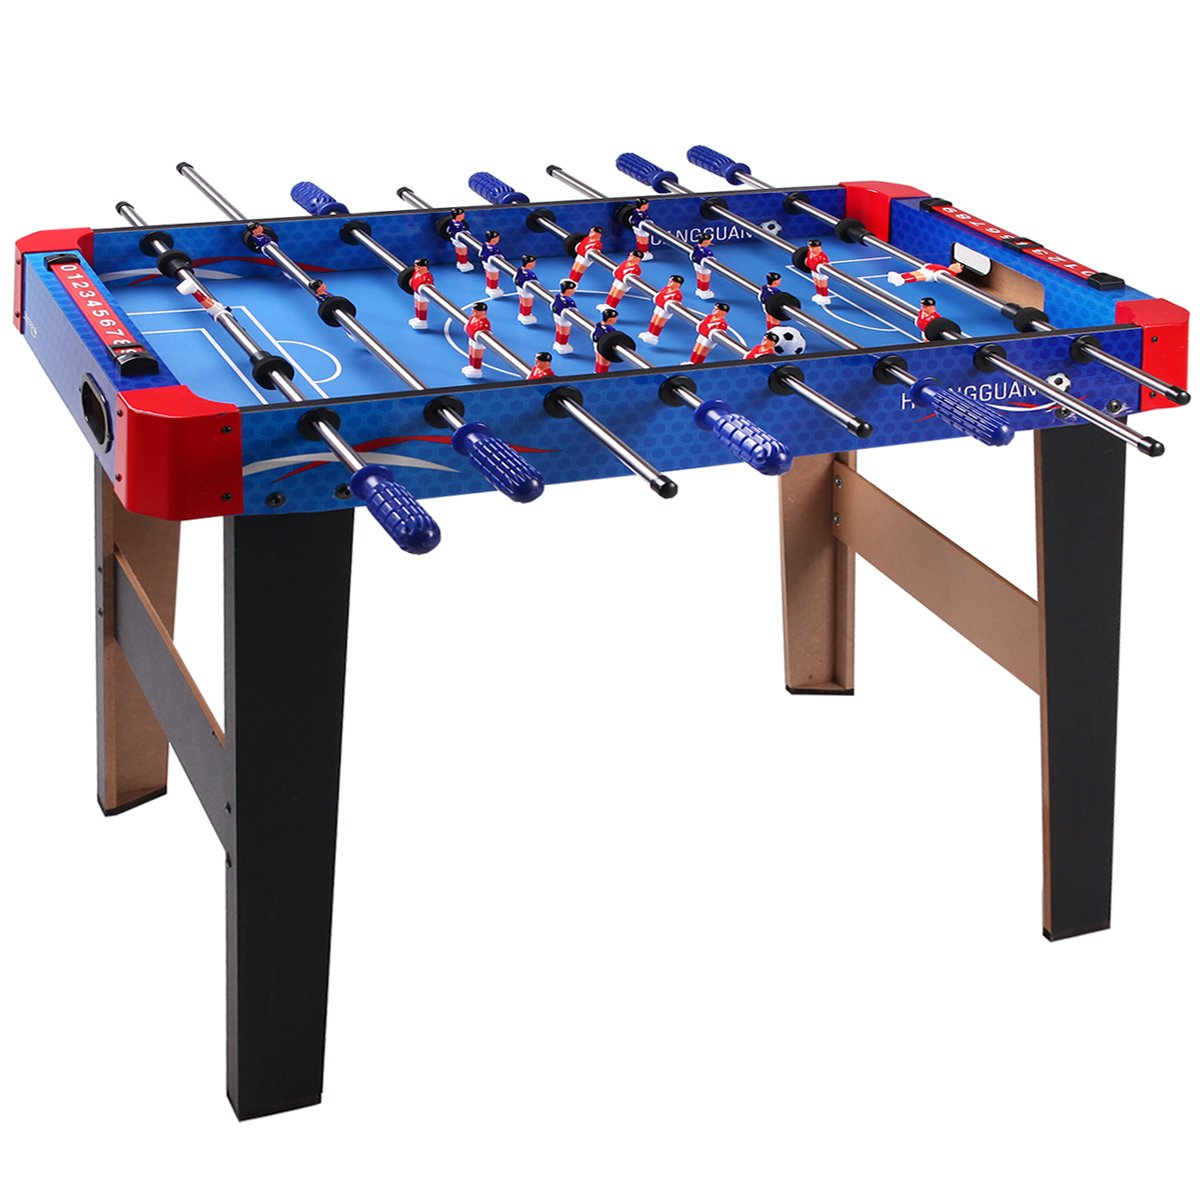 Giantex Foosball Table for Kids Soccer Football Competition Sized Arcade Game Room for Family Use (36'')